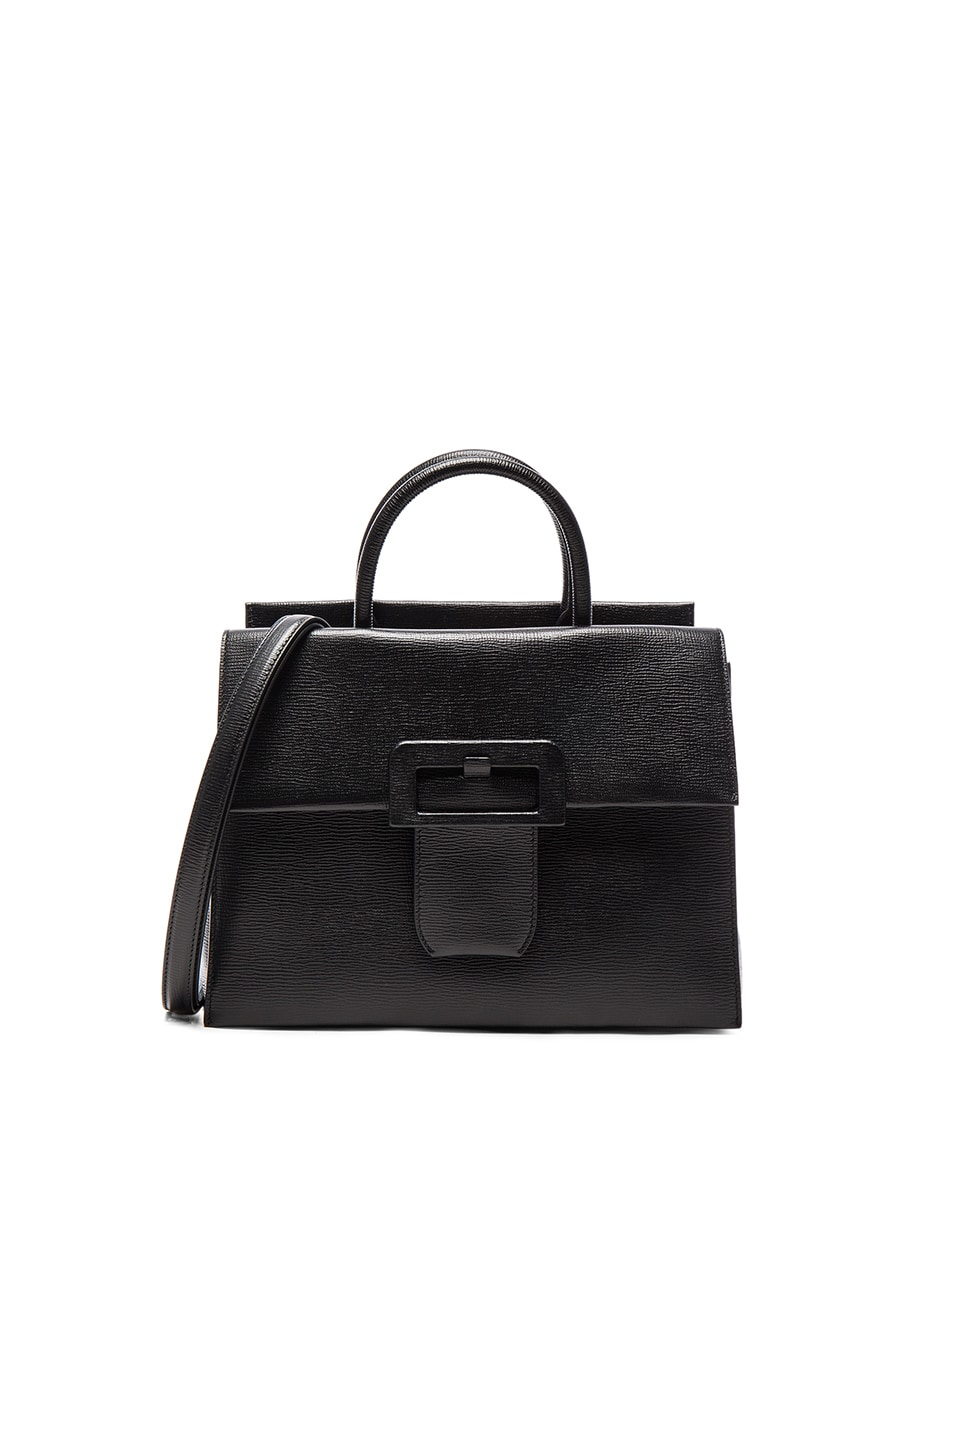 Image 1 of Maison Margiela Buckle Bag in Black